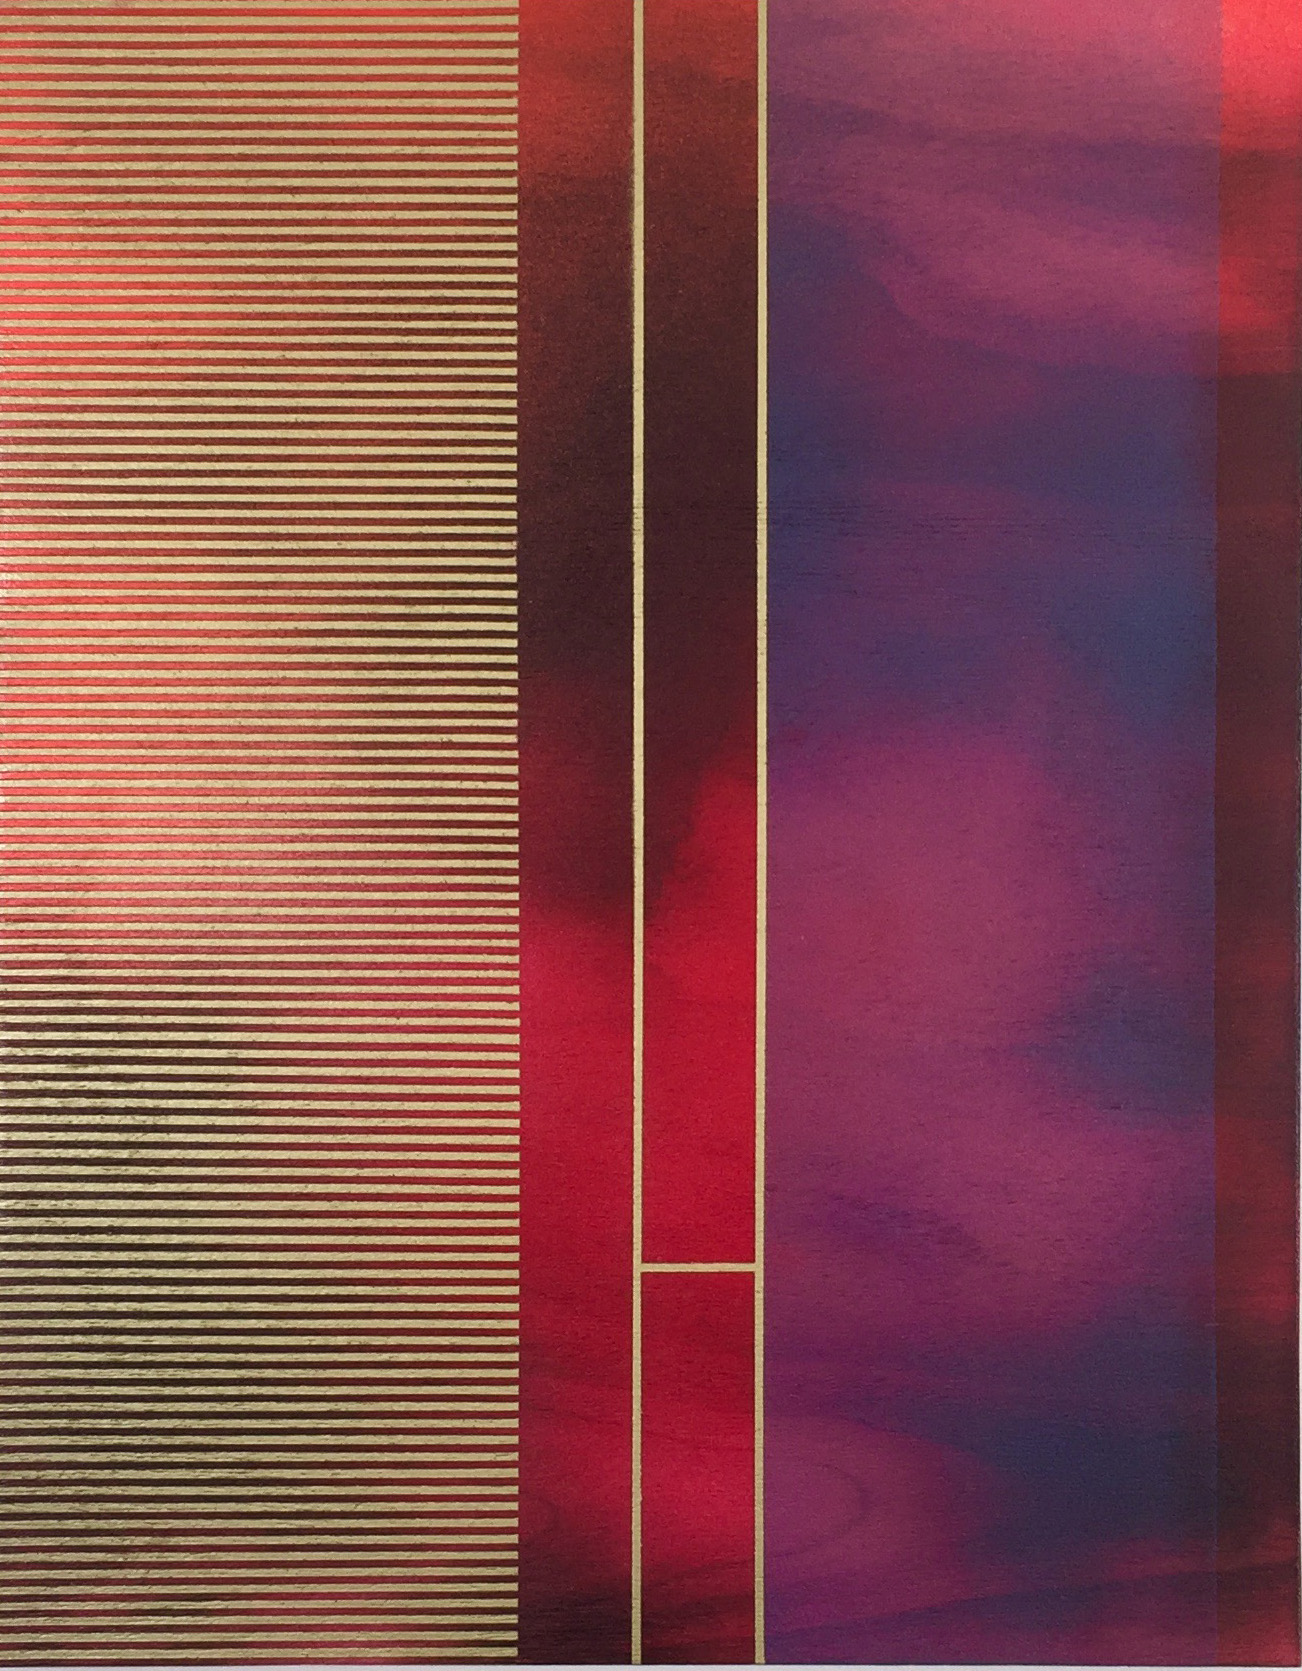 MELISA TAYLOR-METZGER, FROST AND DECIMALS IV, 14 x 11 inches | $400